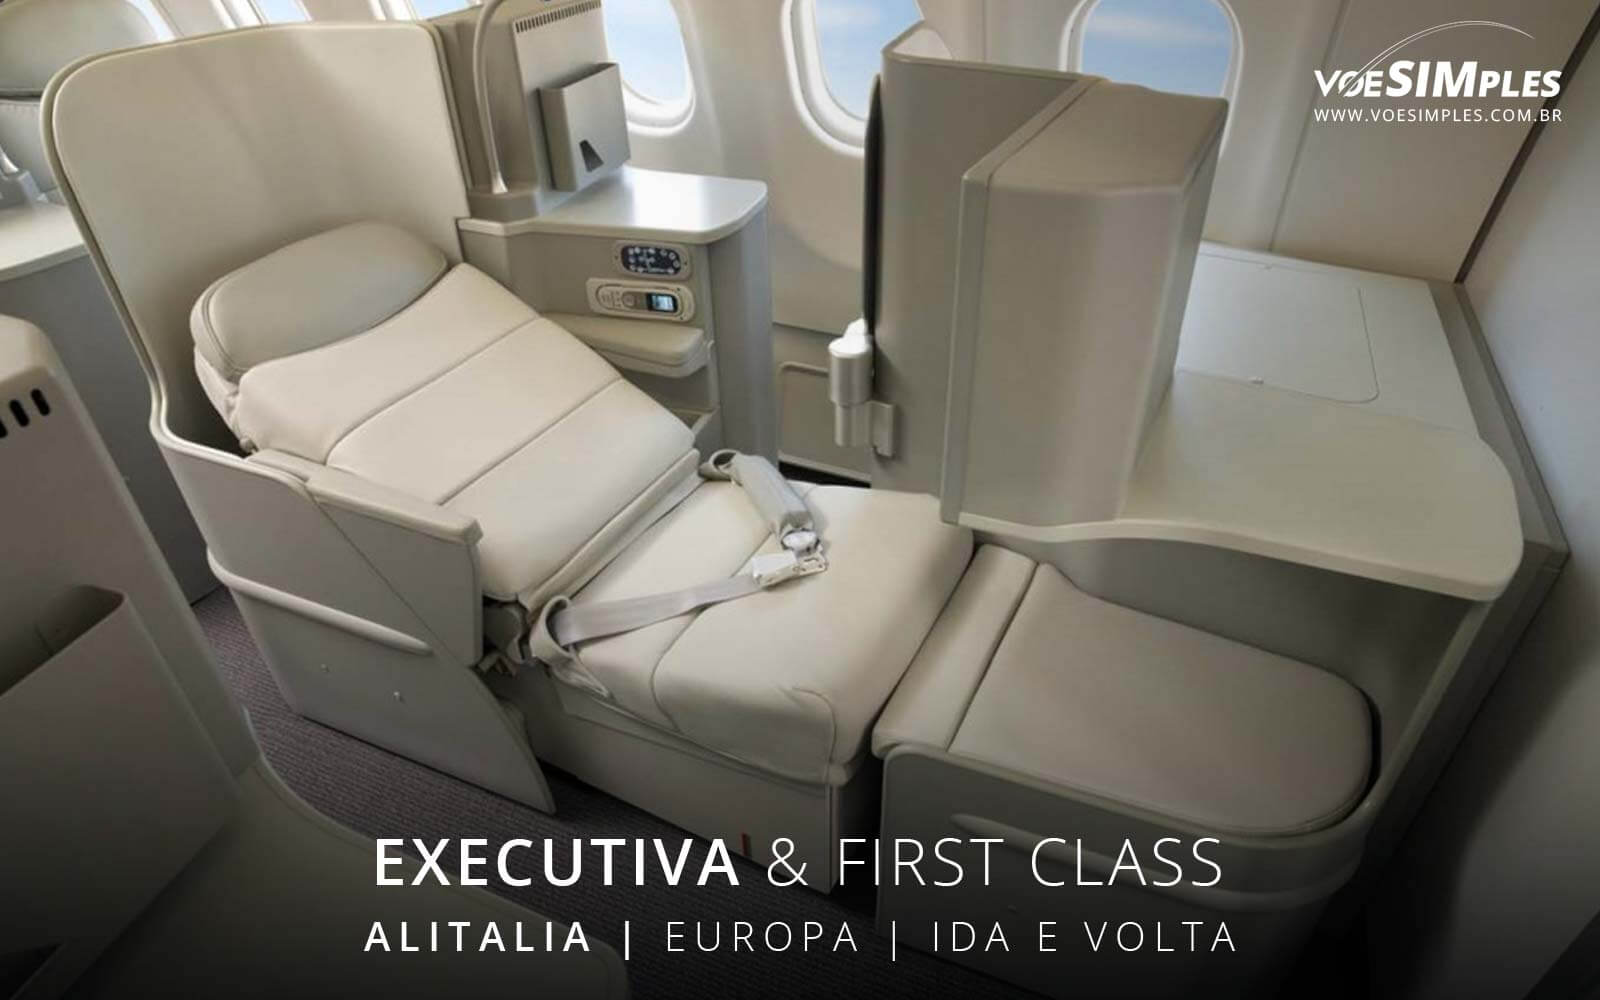 passagens-aereas-executiva-baratas-local-pais-europa-voe-simples-passages-aereas-promocionais-executivas-pais-passagem-promo-executiva-local-1